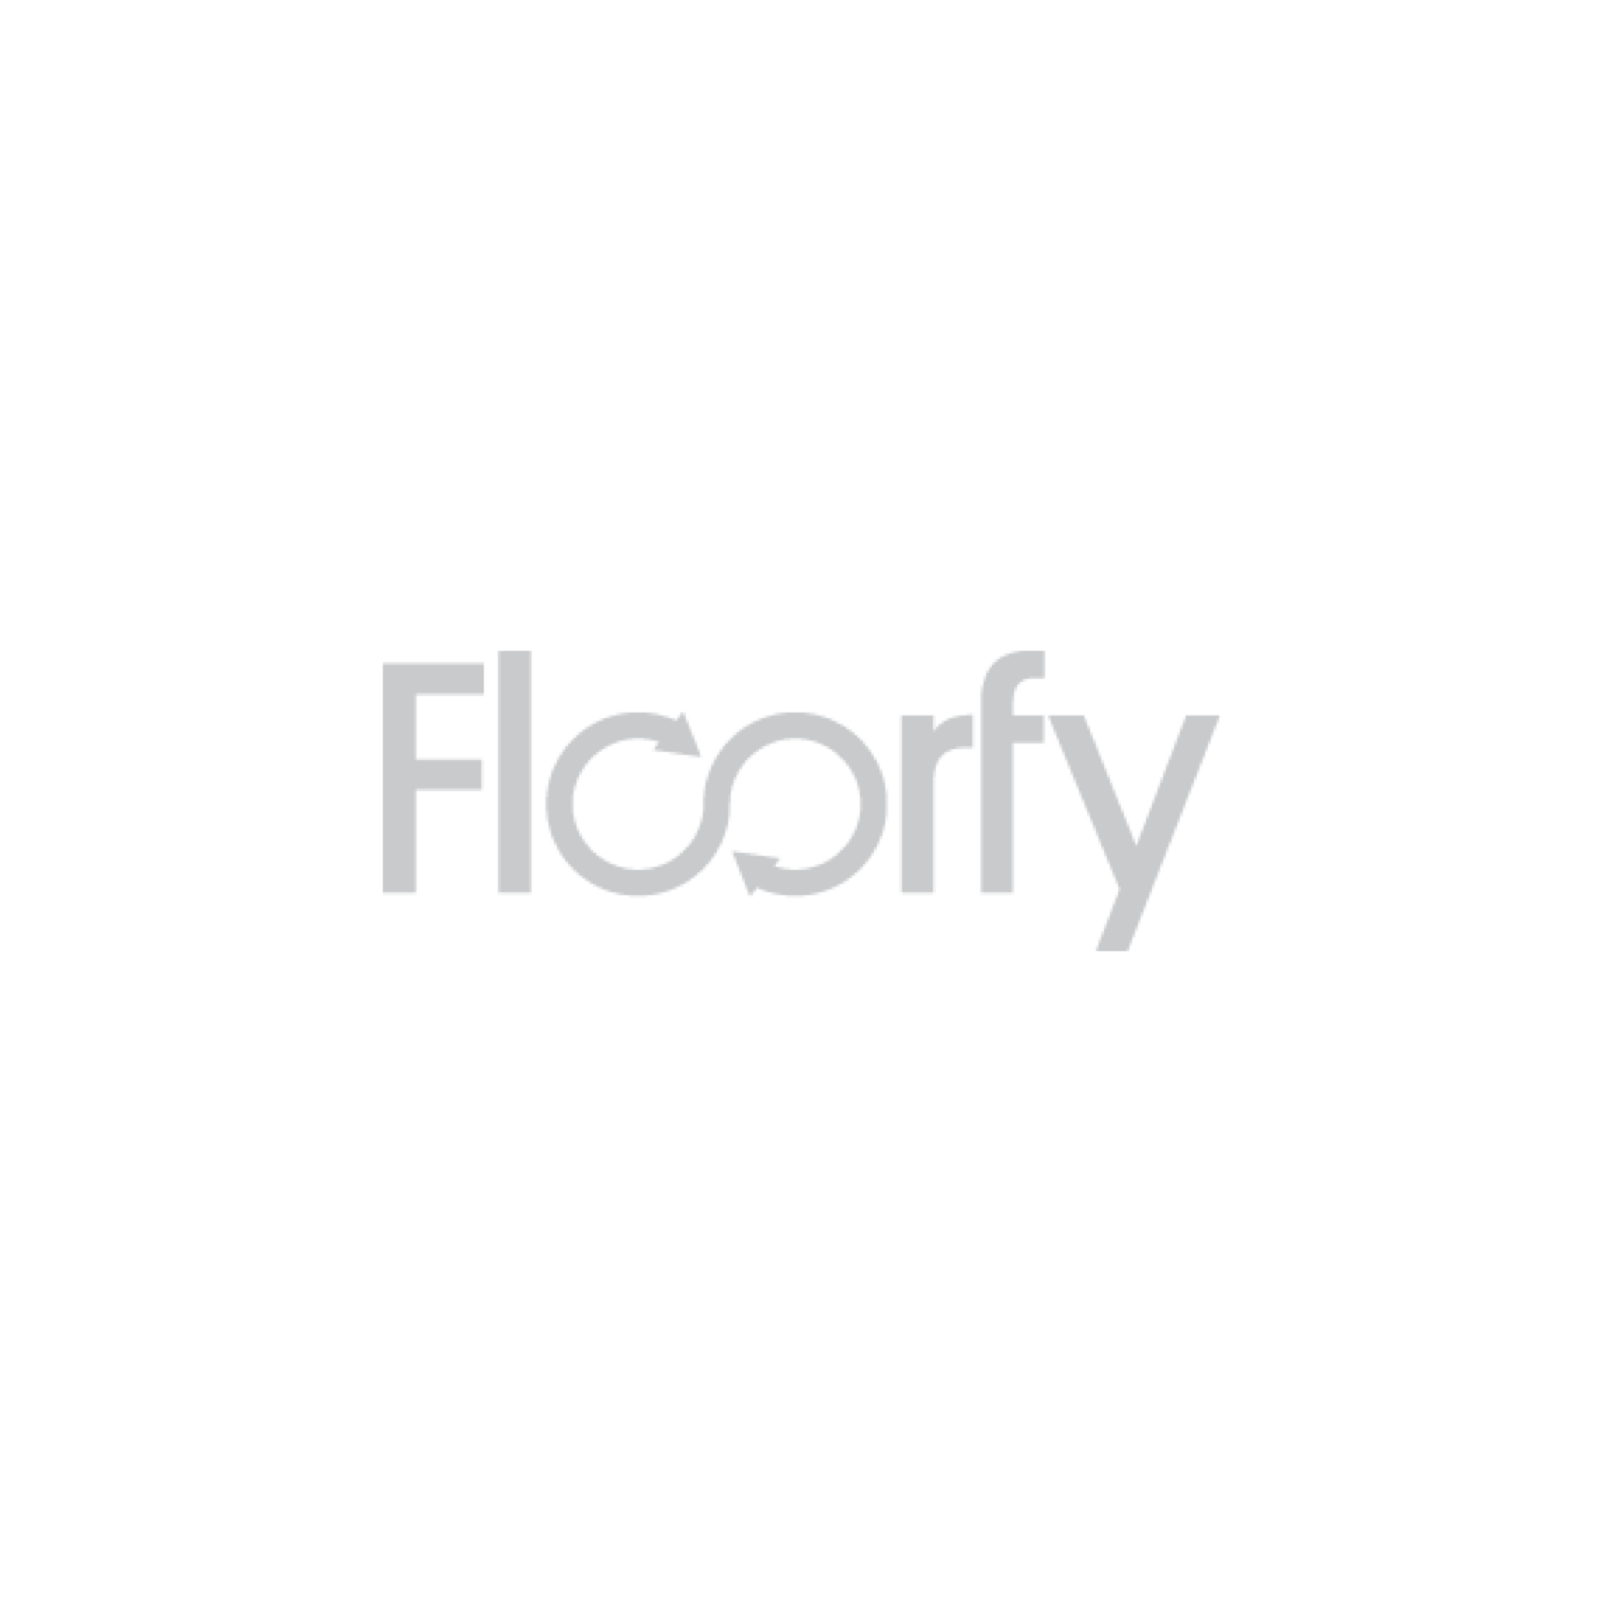 Copy of Floorfy Logo